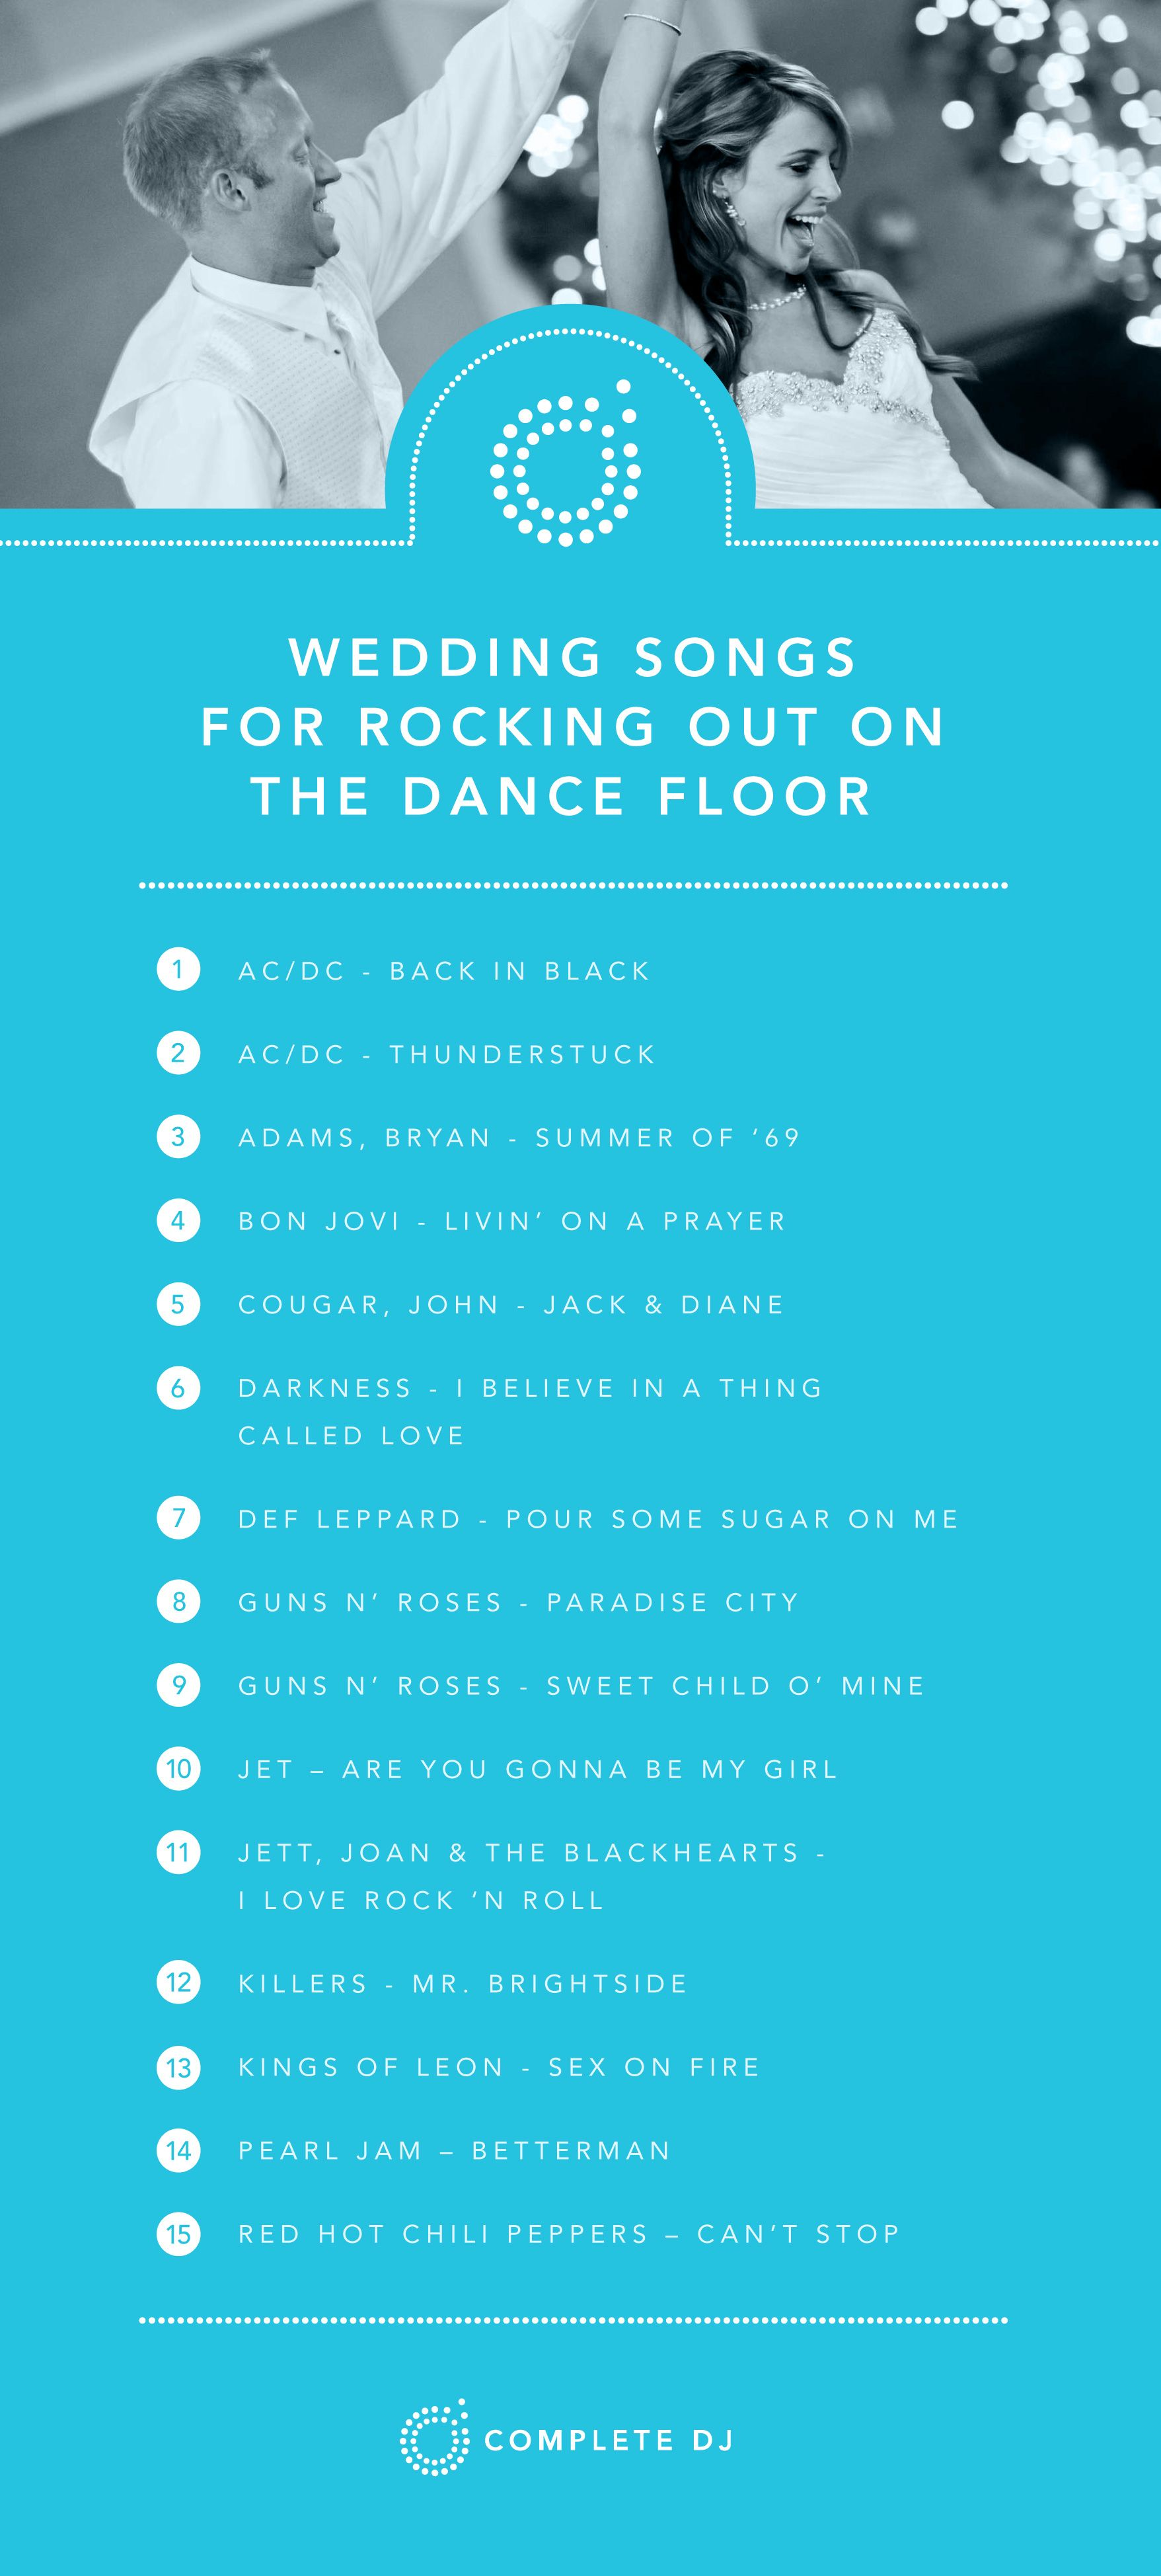 These Songs Are Great On The Dance Floor If Your Crowd Loves To Sing Along And Rock Out What S Some O Wedding Songs Best Wedding Songs Wedding Songs Reception